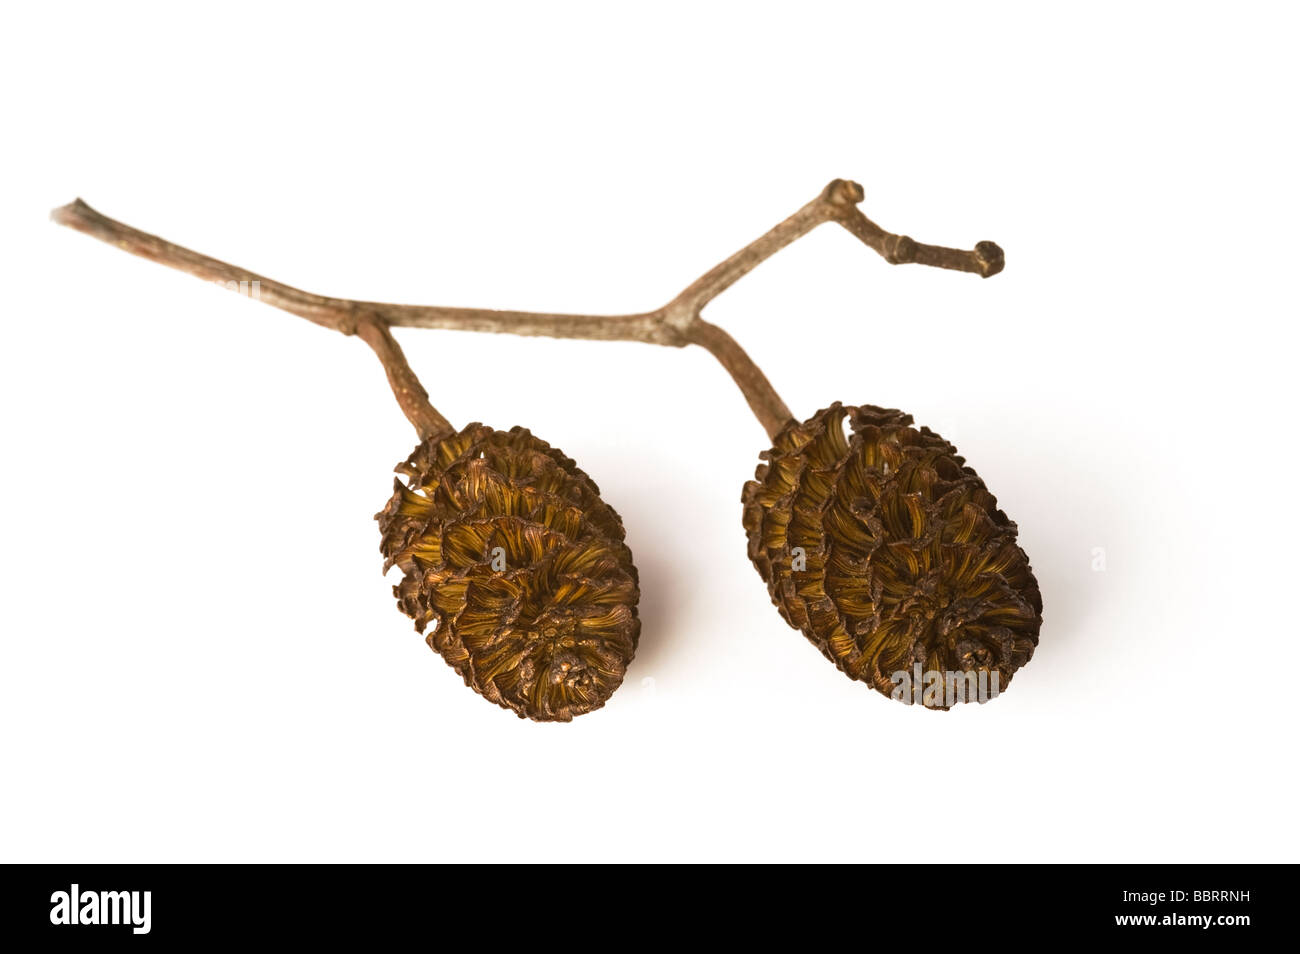 Couple of dried conifer cones against white background - Stock Image